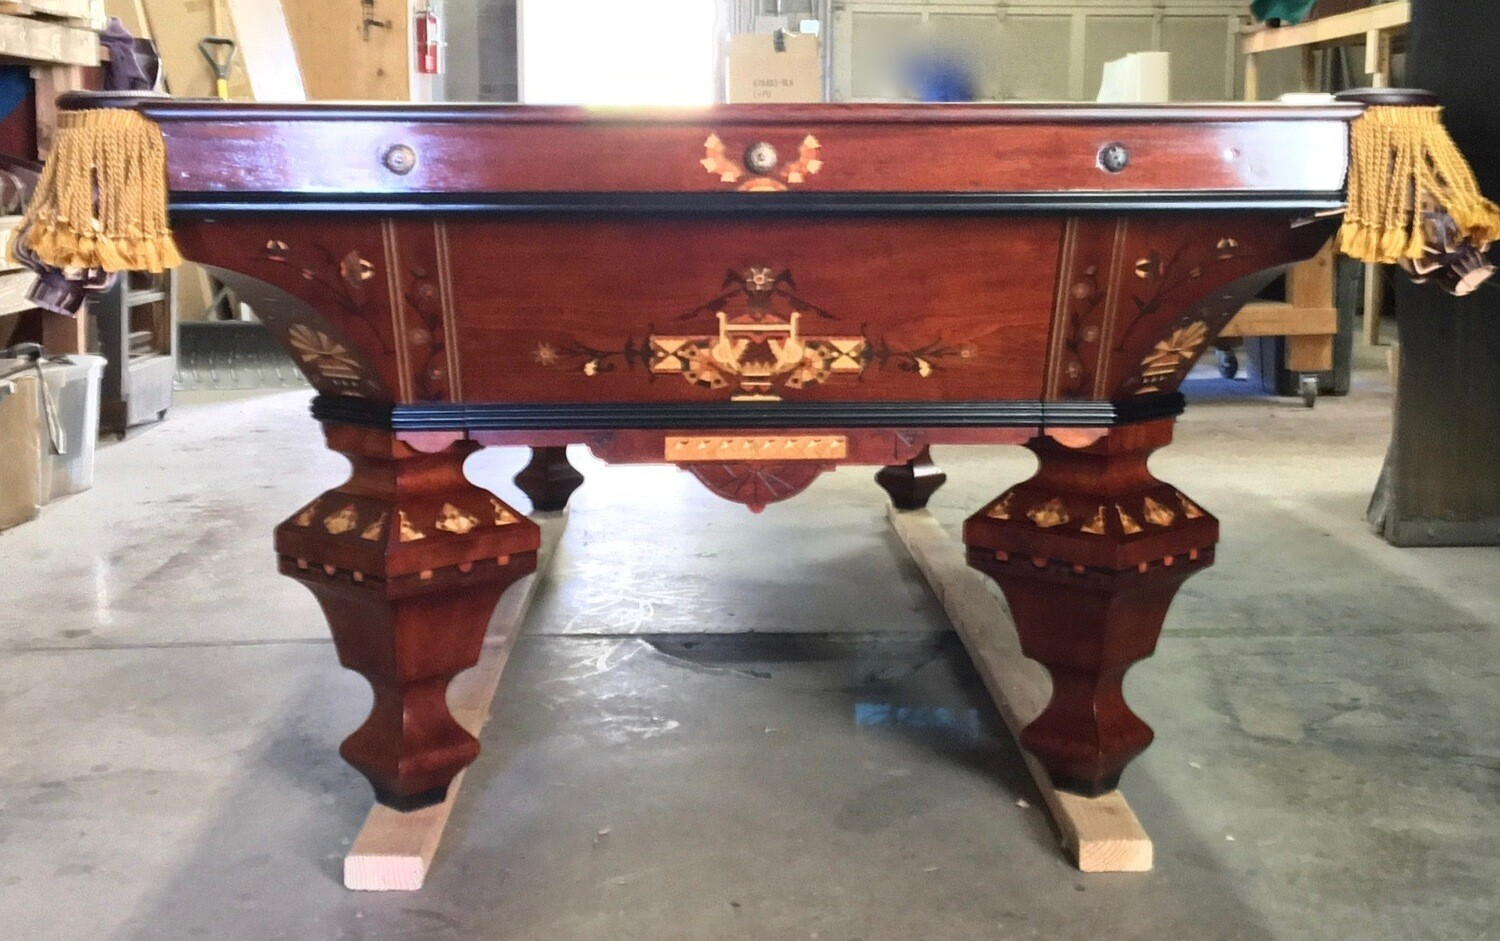 9' Brunswick Brilliant Novelty Pool Table - Circa 1880-1882